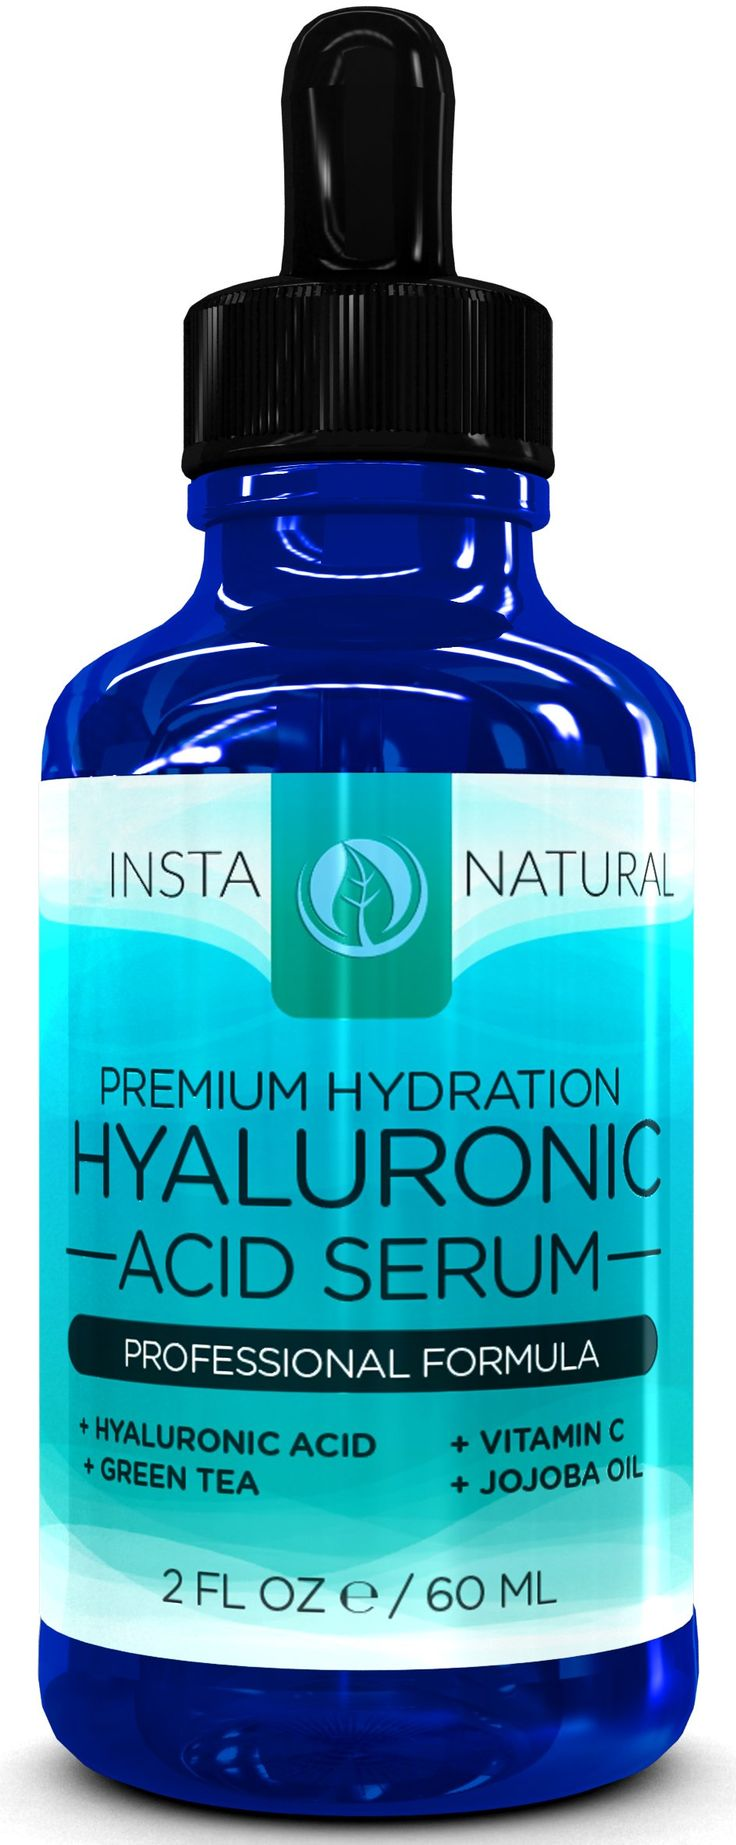 Hyaluronic Acid Serum -2 FL OZ- BEST VEGAN Hyaluronic Acid + Vitamin C Serum + Vitamin E + Green Tea - This Anti-Aging Serum for Face Will Reduce Fine Lines, Wrinkles & Discoloration So You Can Obtain Youthful, Radiant, Plump, and Vibrant Skin That You Have Always Desired -TWICE the SIZE- 100% Satisfaction Guaranteed